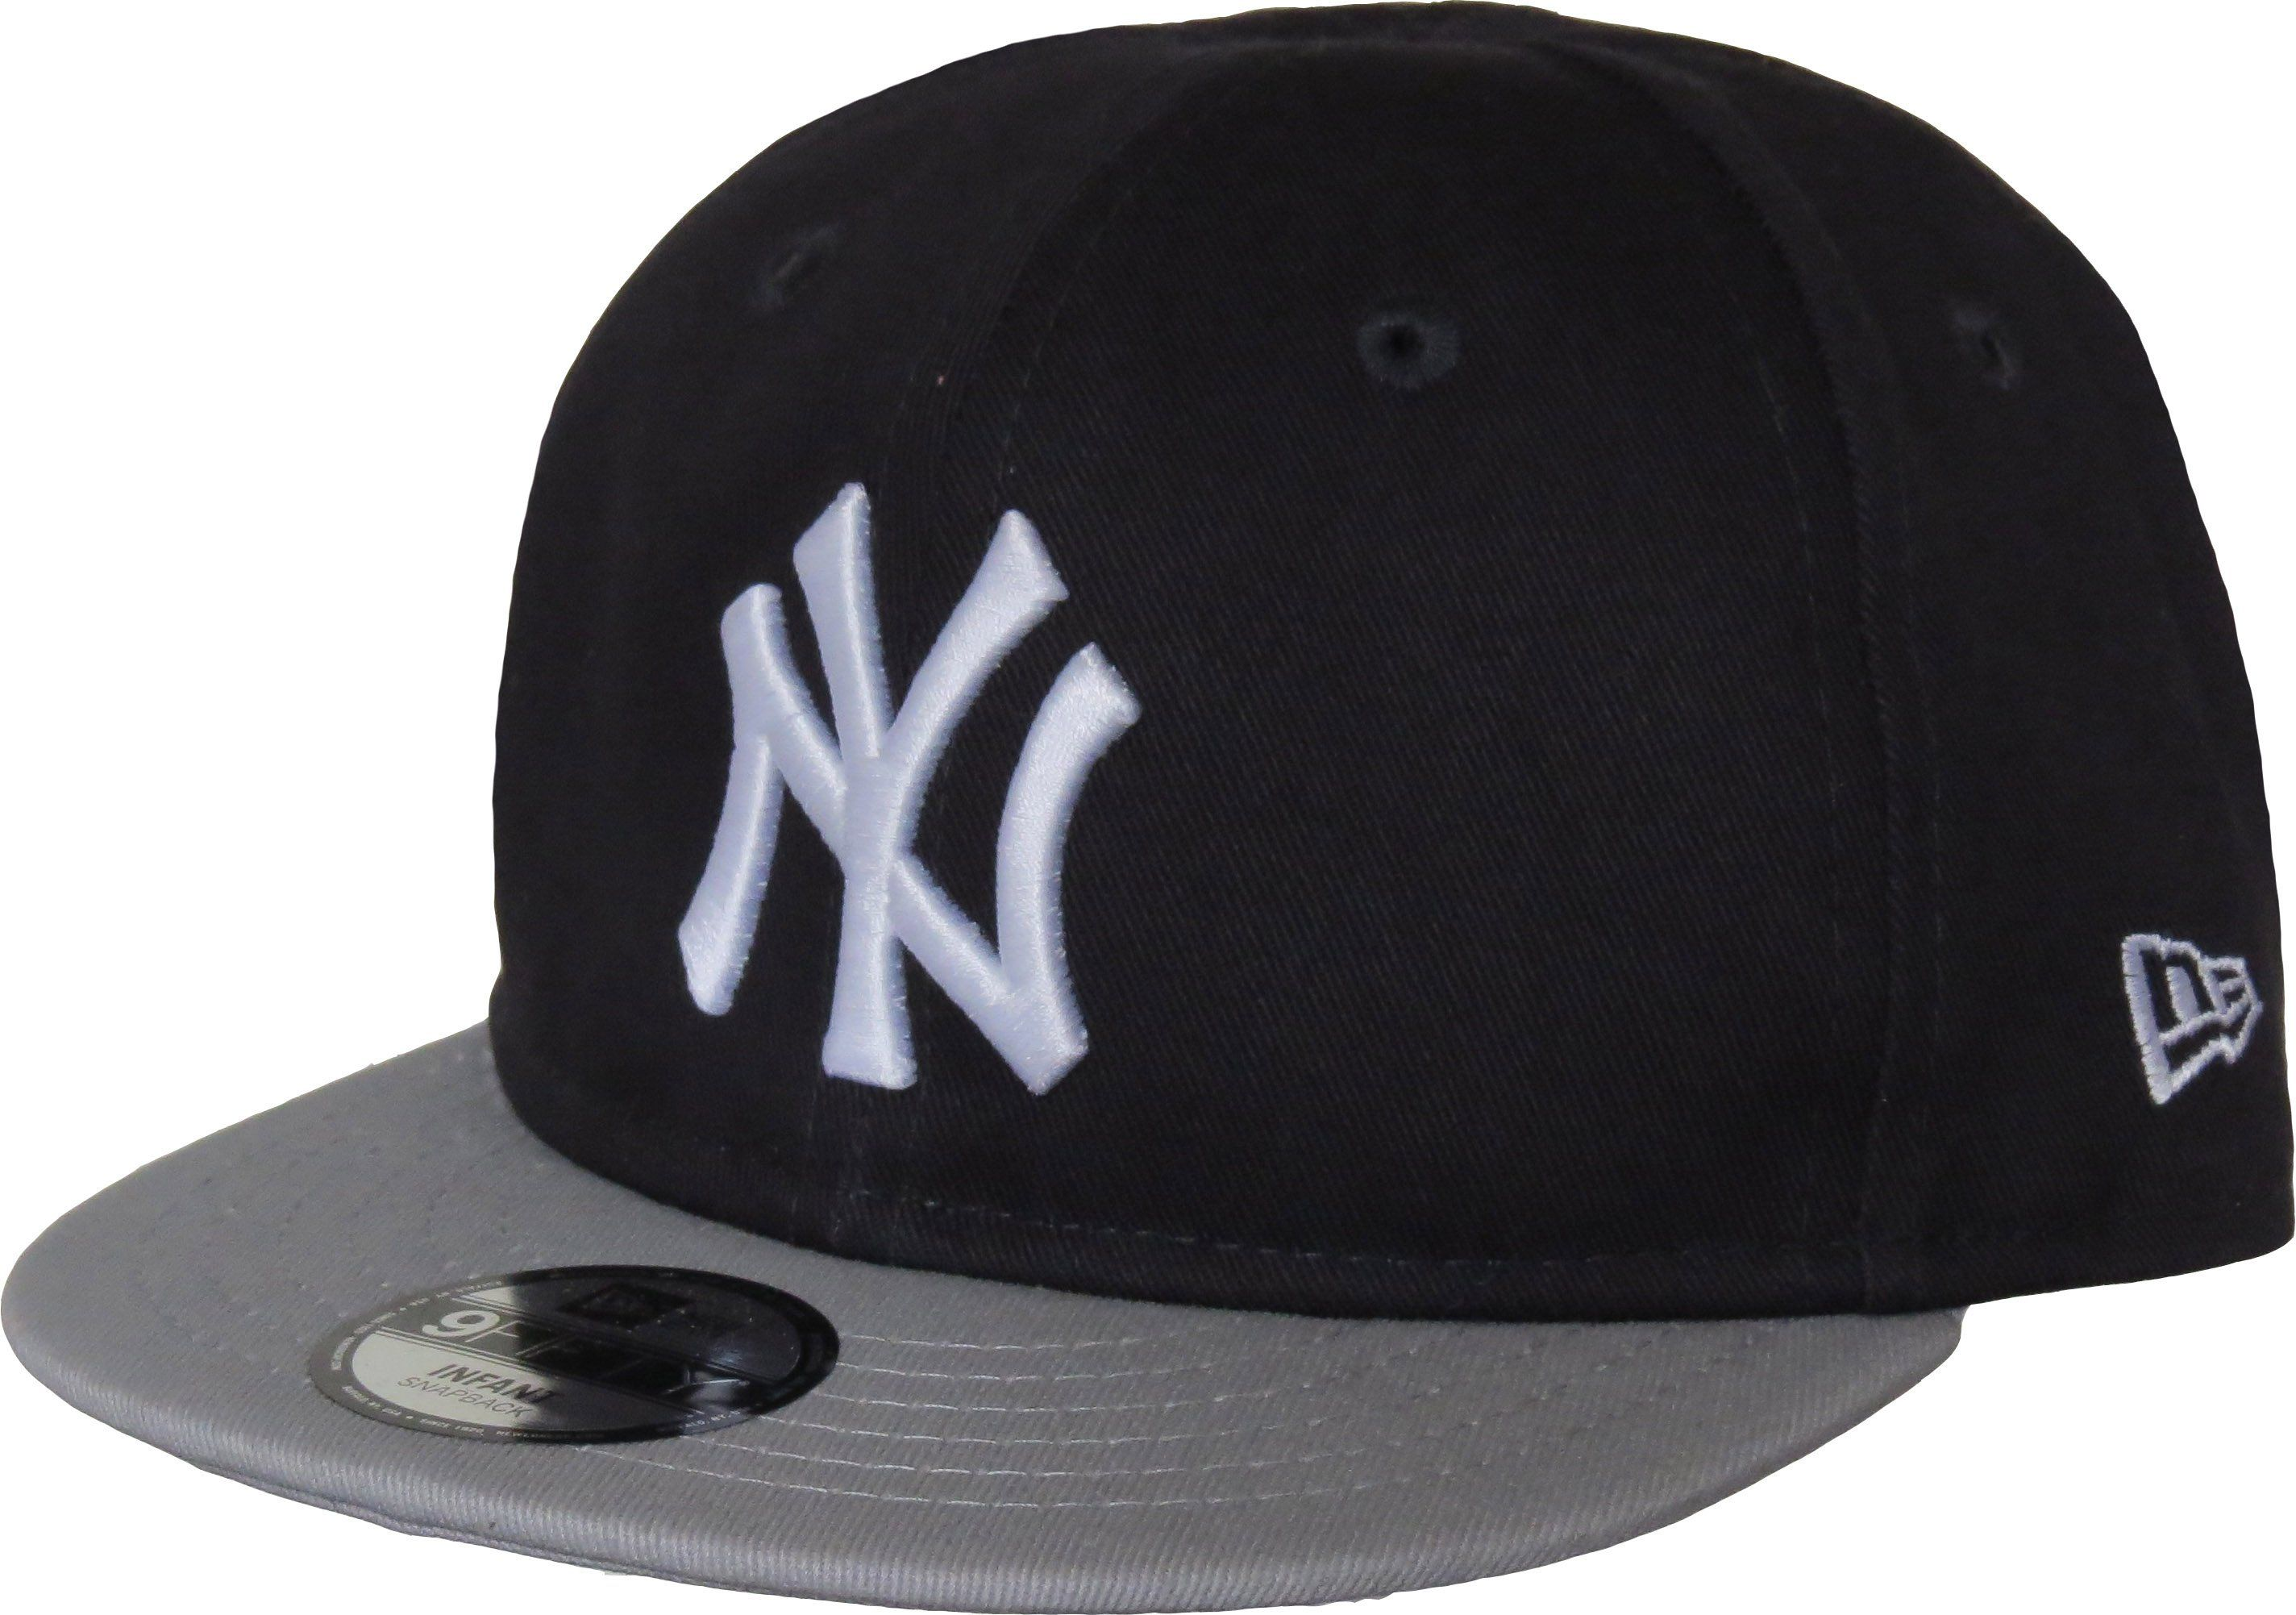 84d223b35 New Era 950 My 1st NY Yankees Infant Snapback Cap ( 0 - 2 years old ) –  lovemycap